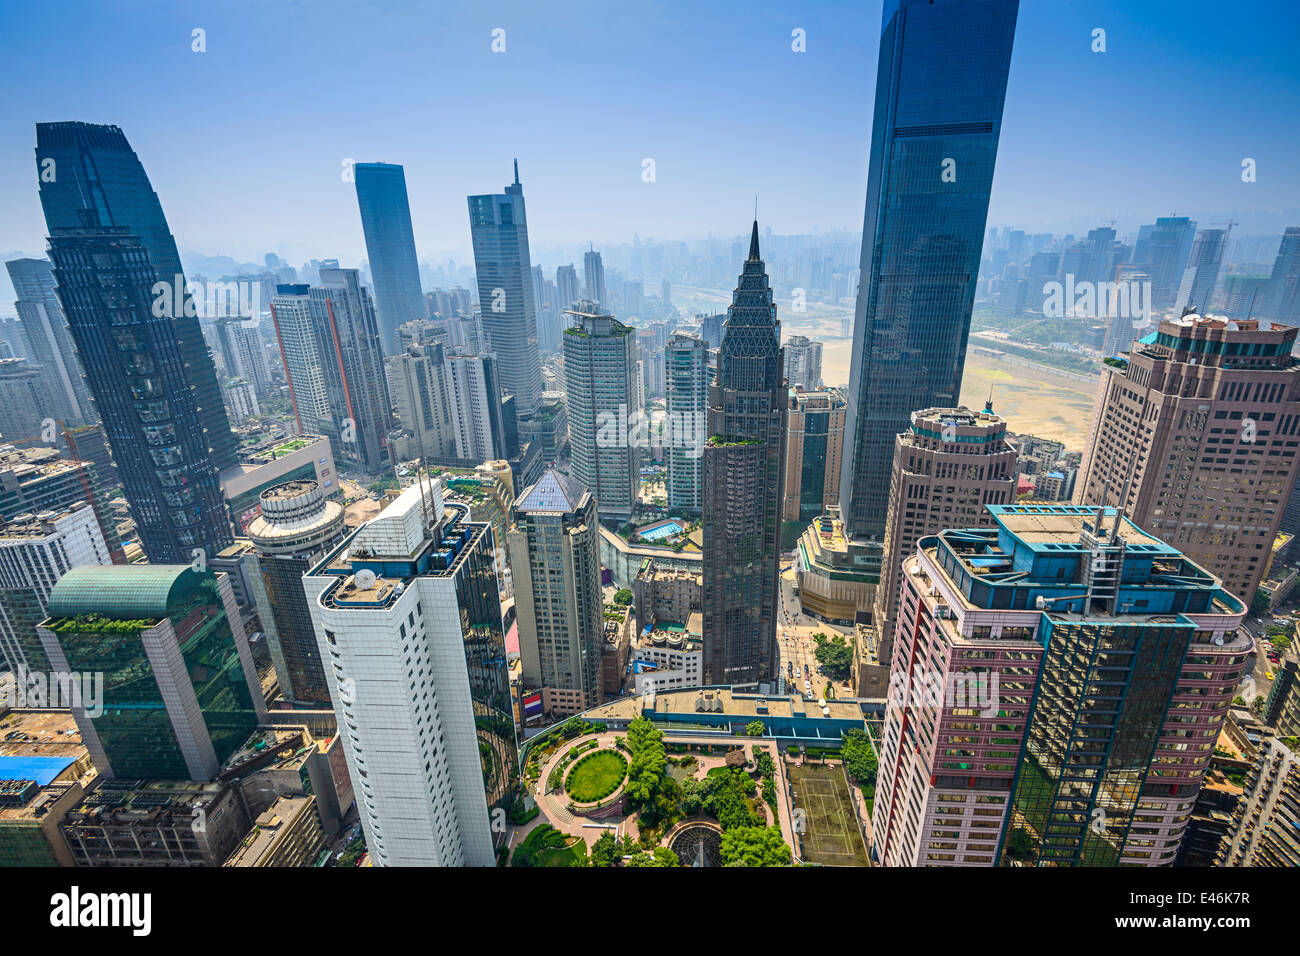 Chongqing, China financial district aerial skyline. - Stock Image